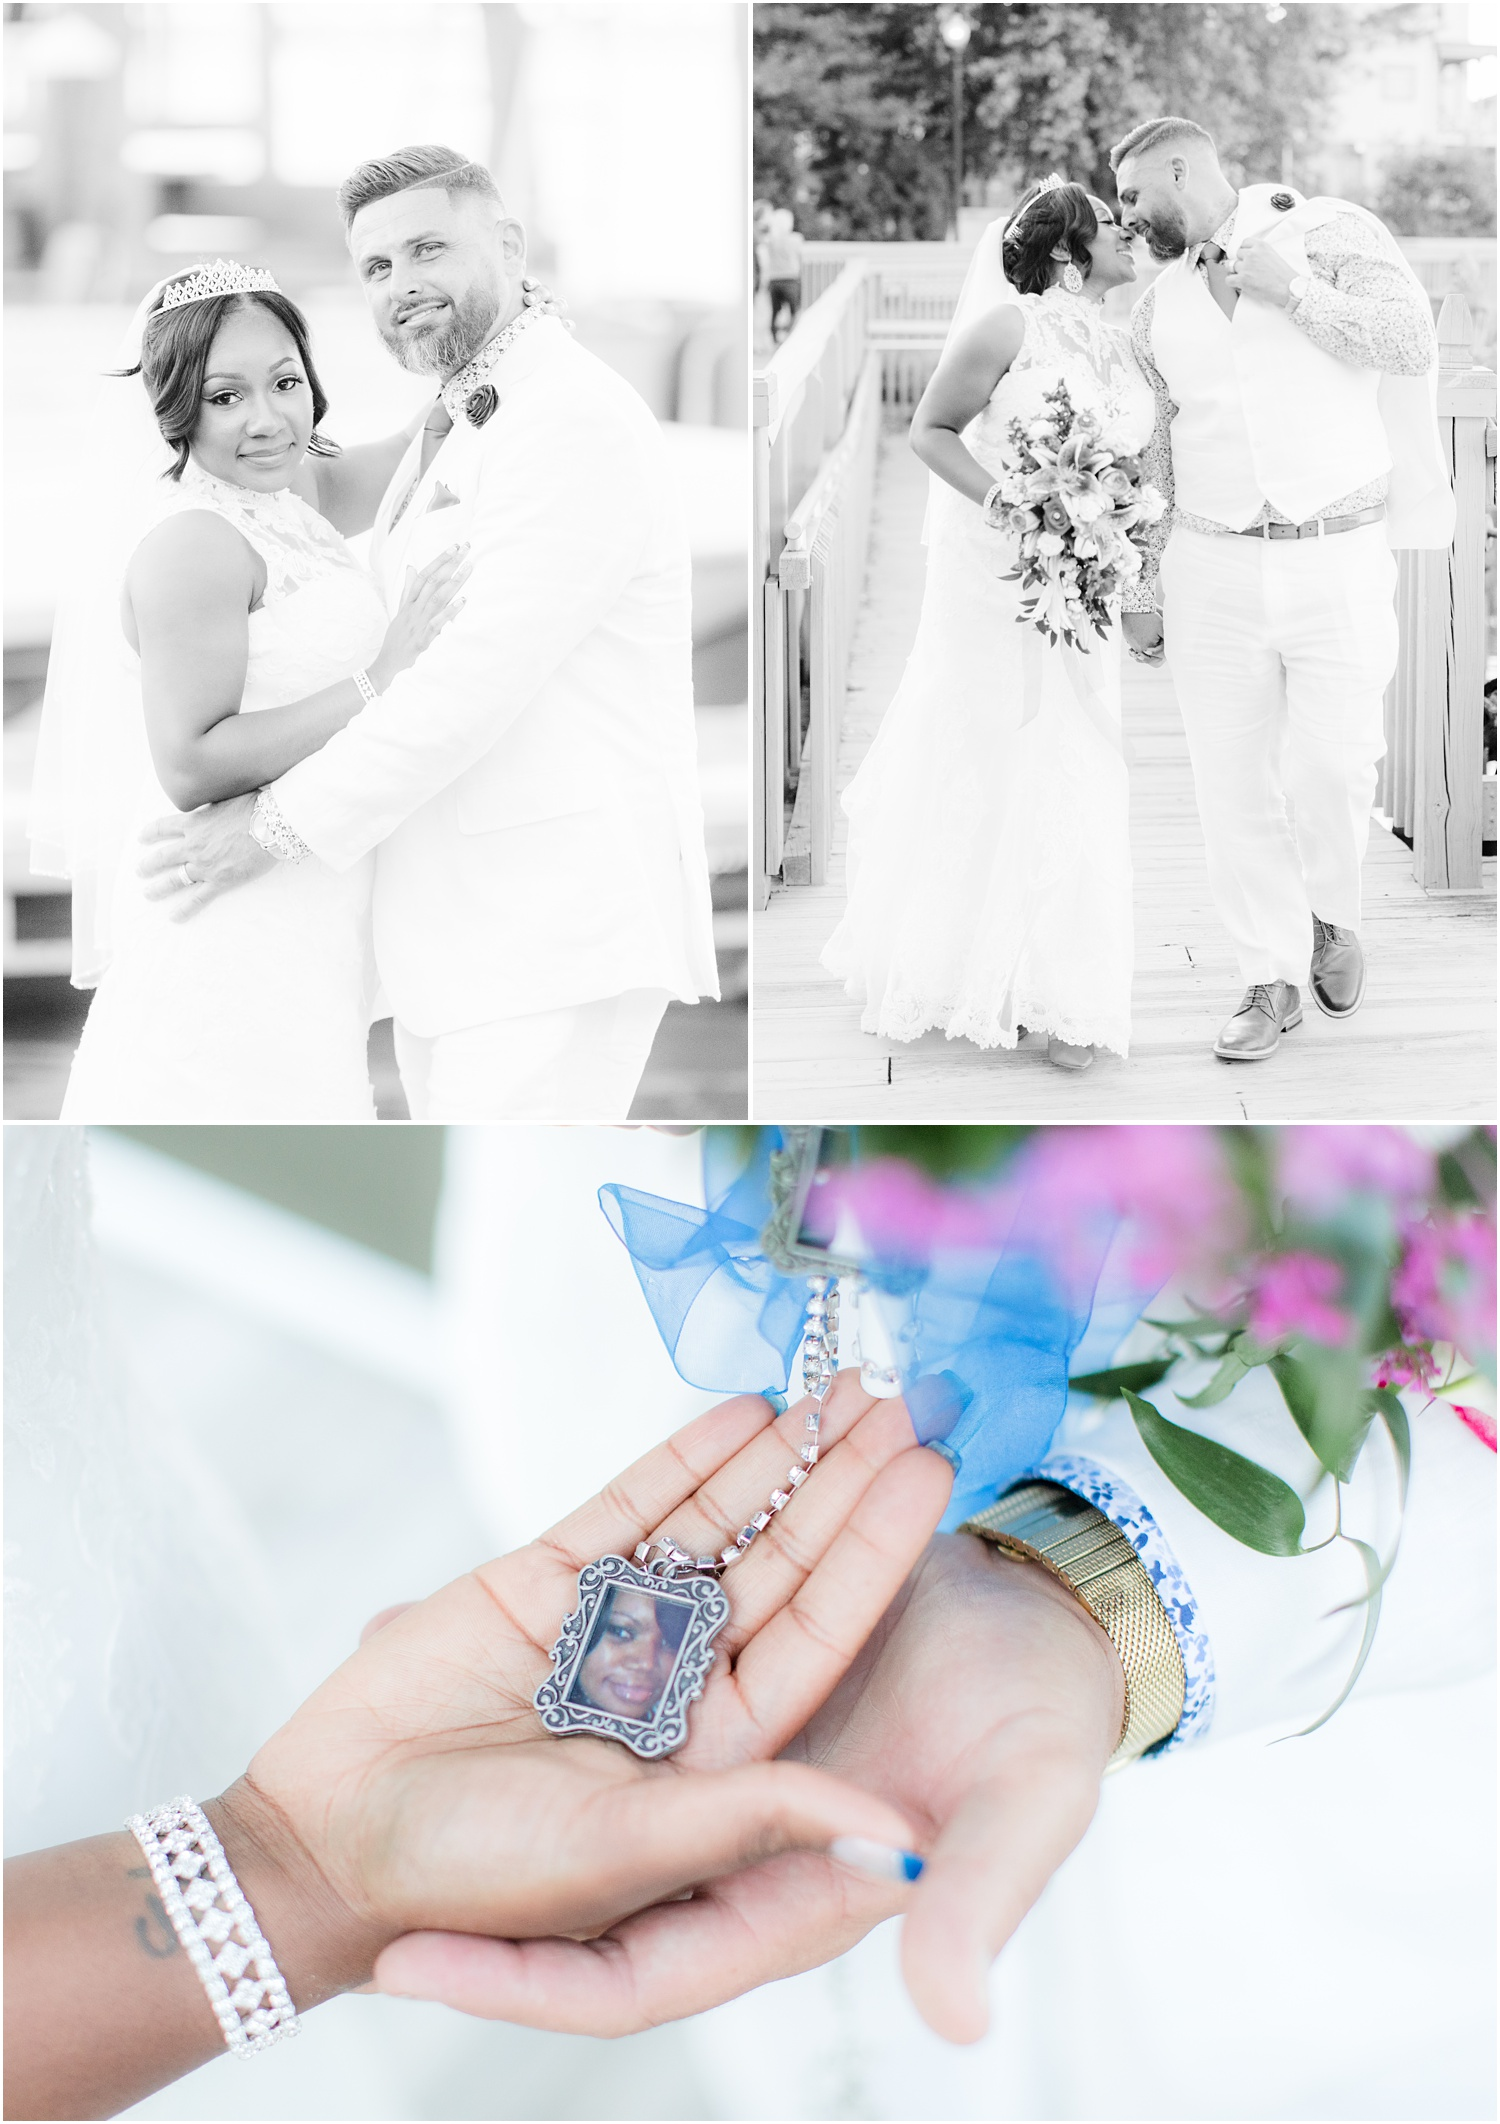 romantic black and white Bride and groom photos in Chesapeake City, MD.